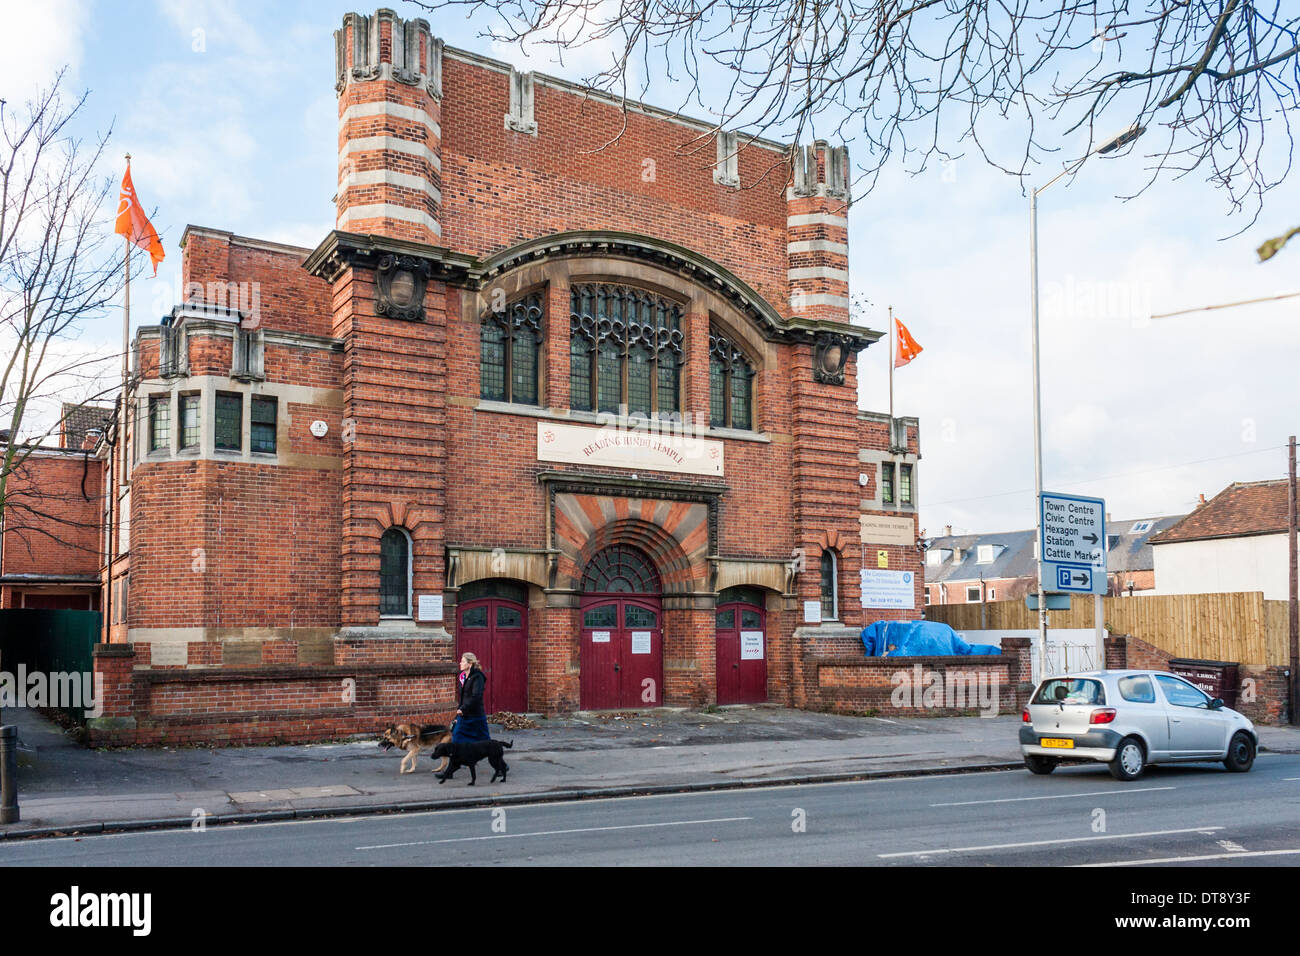 Former church converted for use as a Hindu Temple, Reading, Berkshire, England, GB, UK. Stock Photo